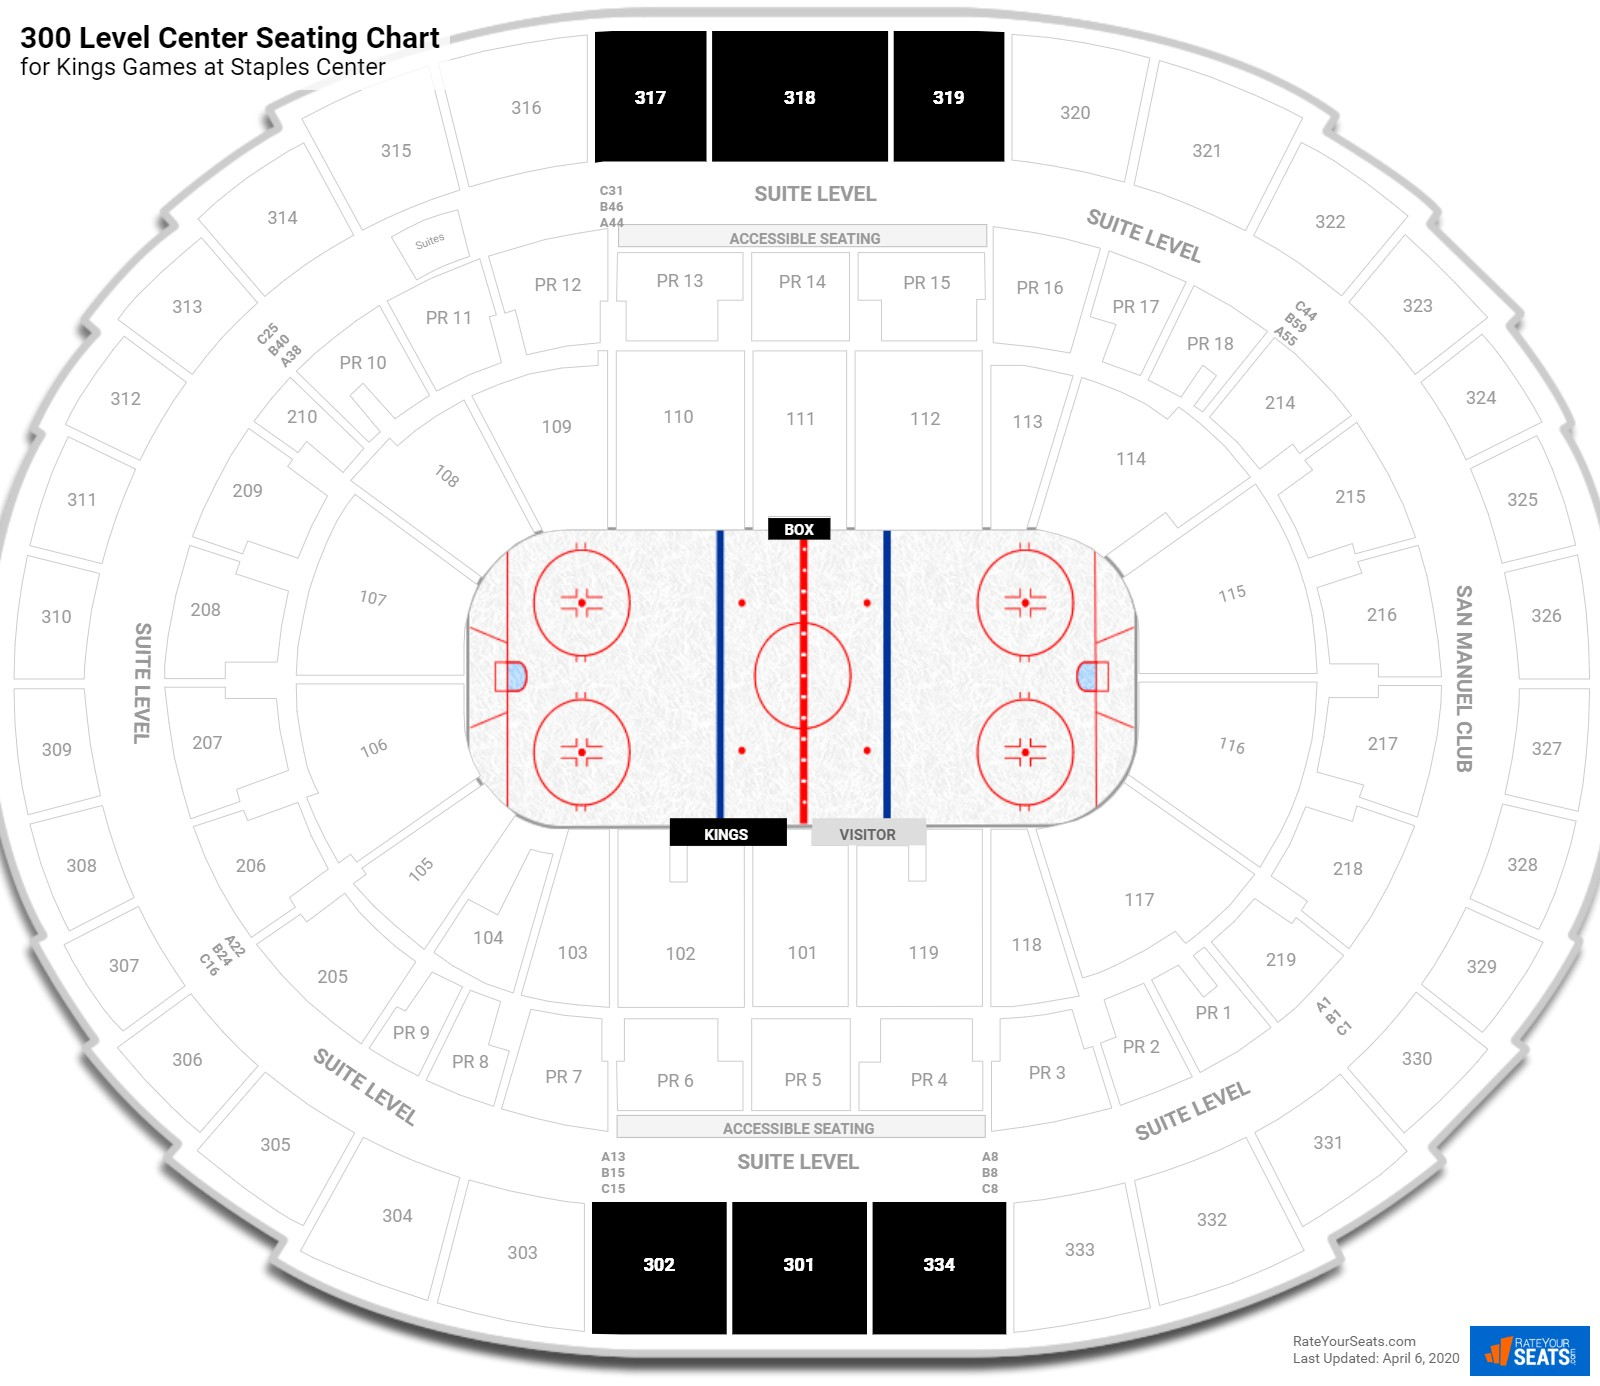 Staples Center Upper Concourse Center seating chart